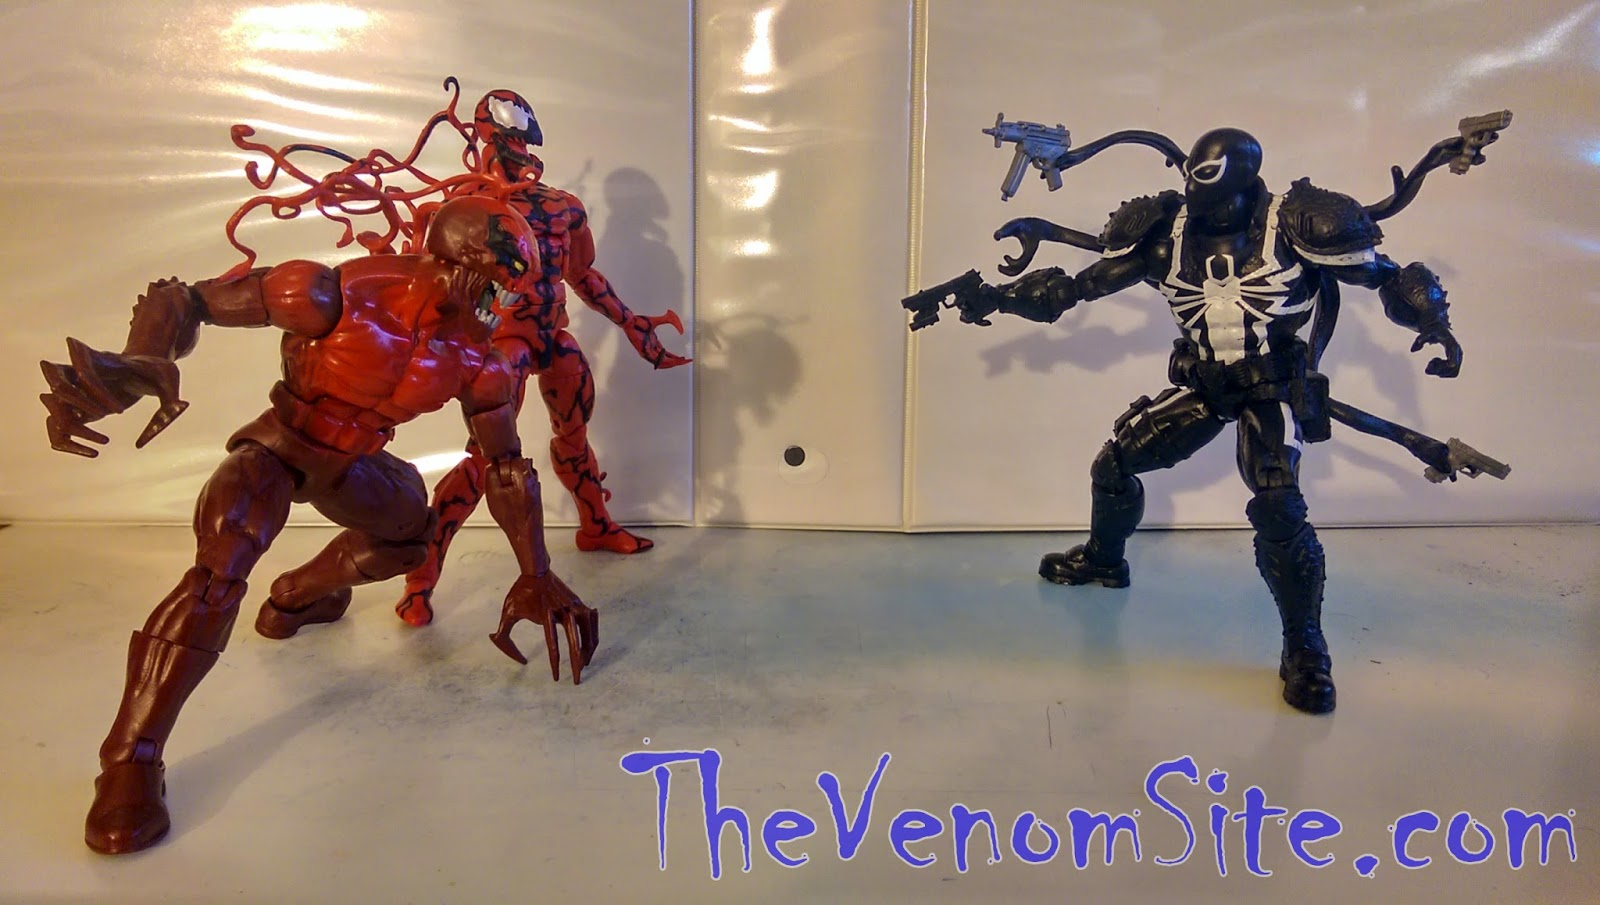 Collect all three Marvel Legends Infinite symbiote action figures online at eBay and Amazon